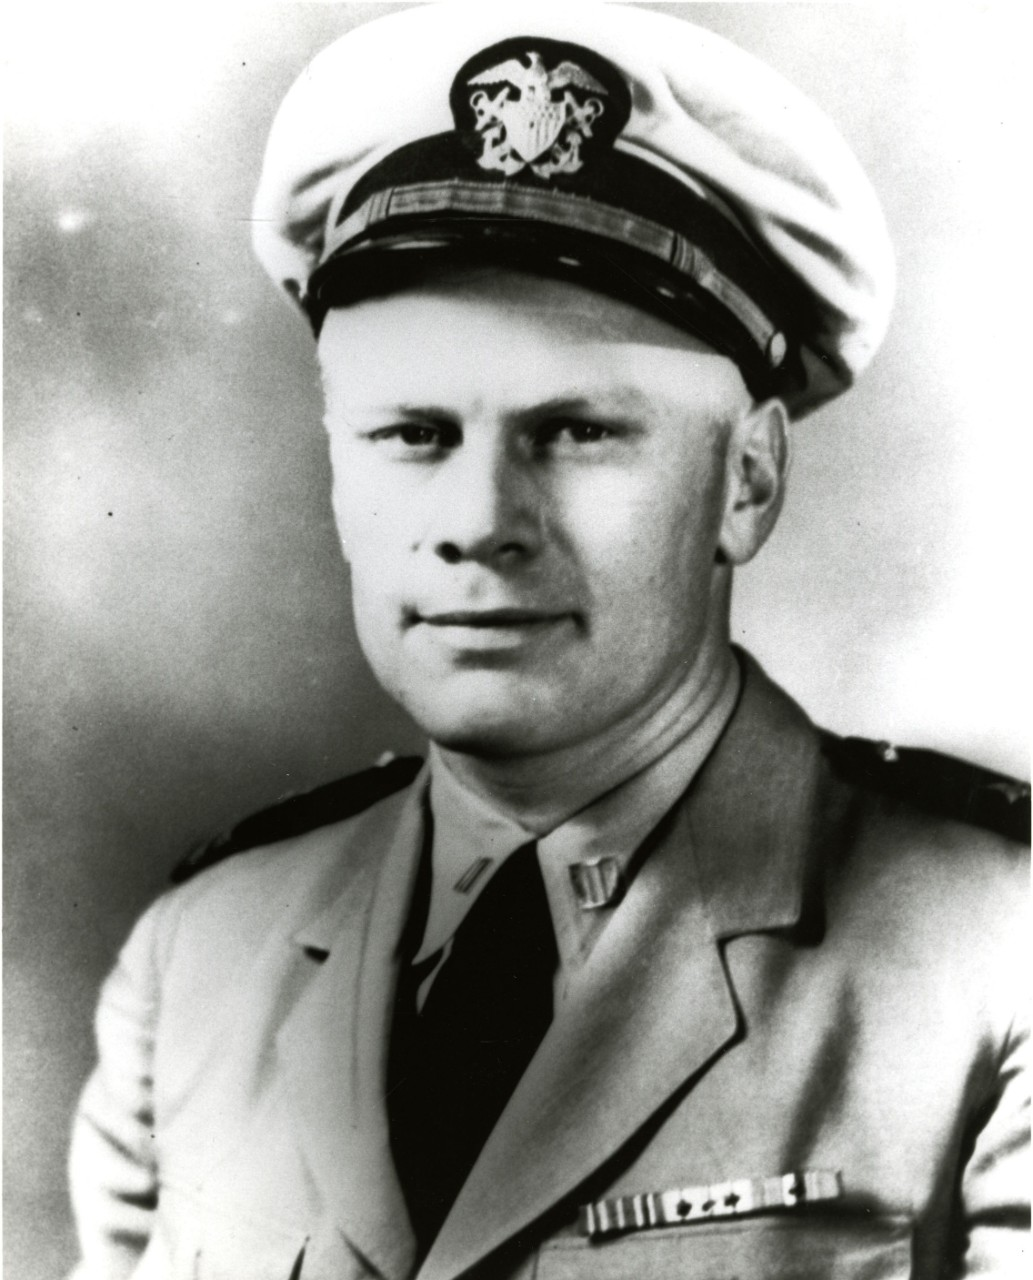 An undated file photo of U.S. Navy Lt. Gerald R. Ford taken during World War II